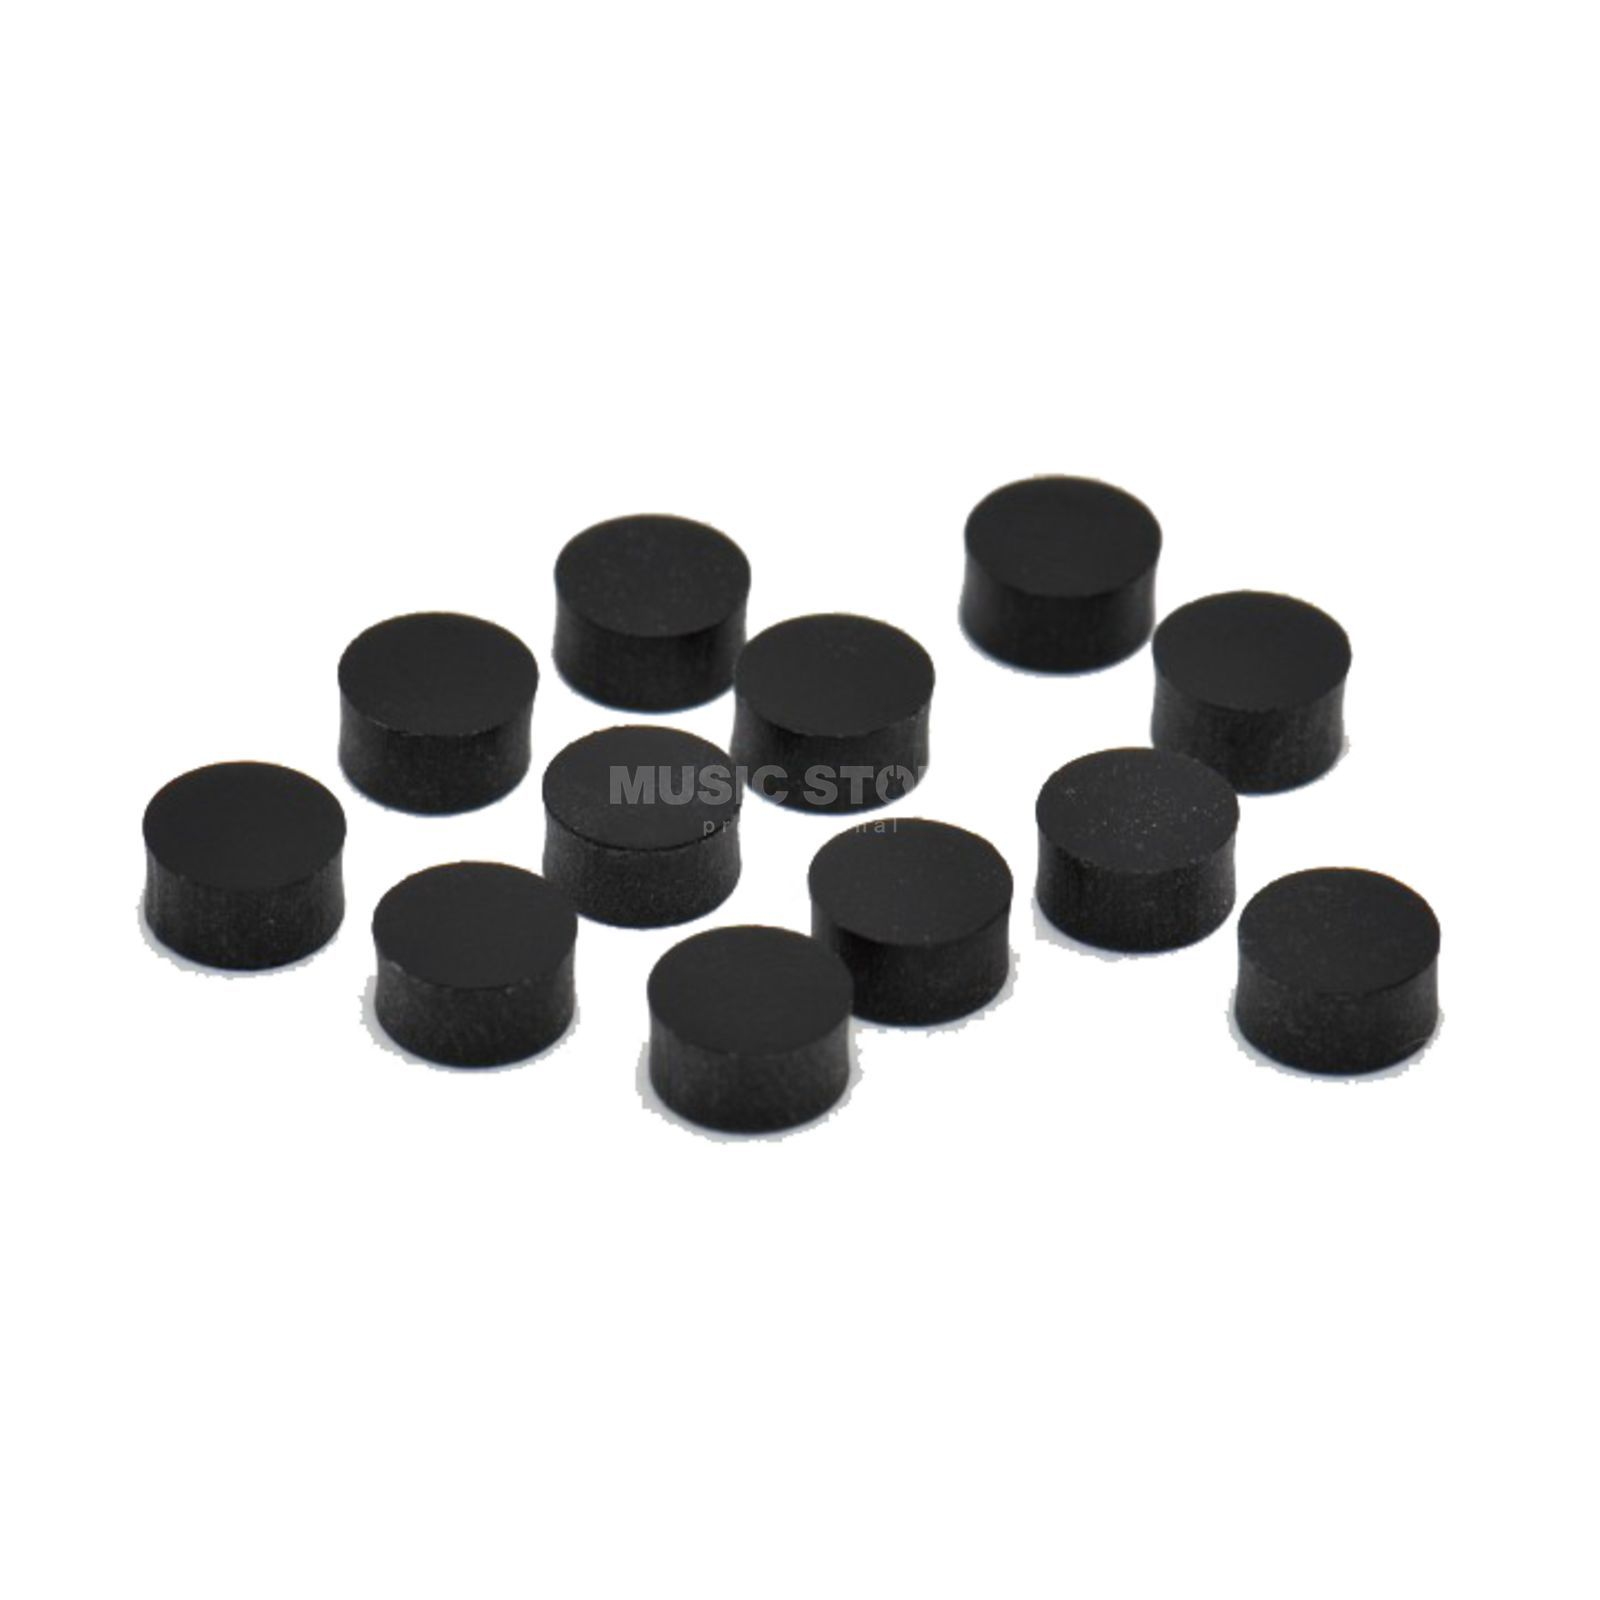 Göldo Dot 6mm Black 12-Pack  Product Image